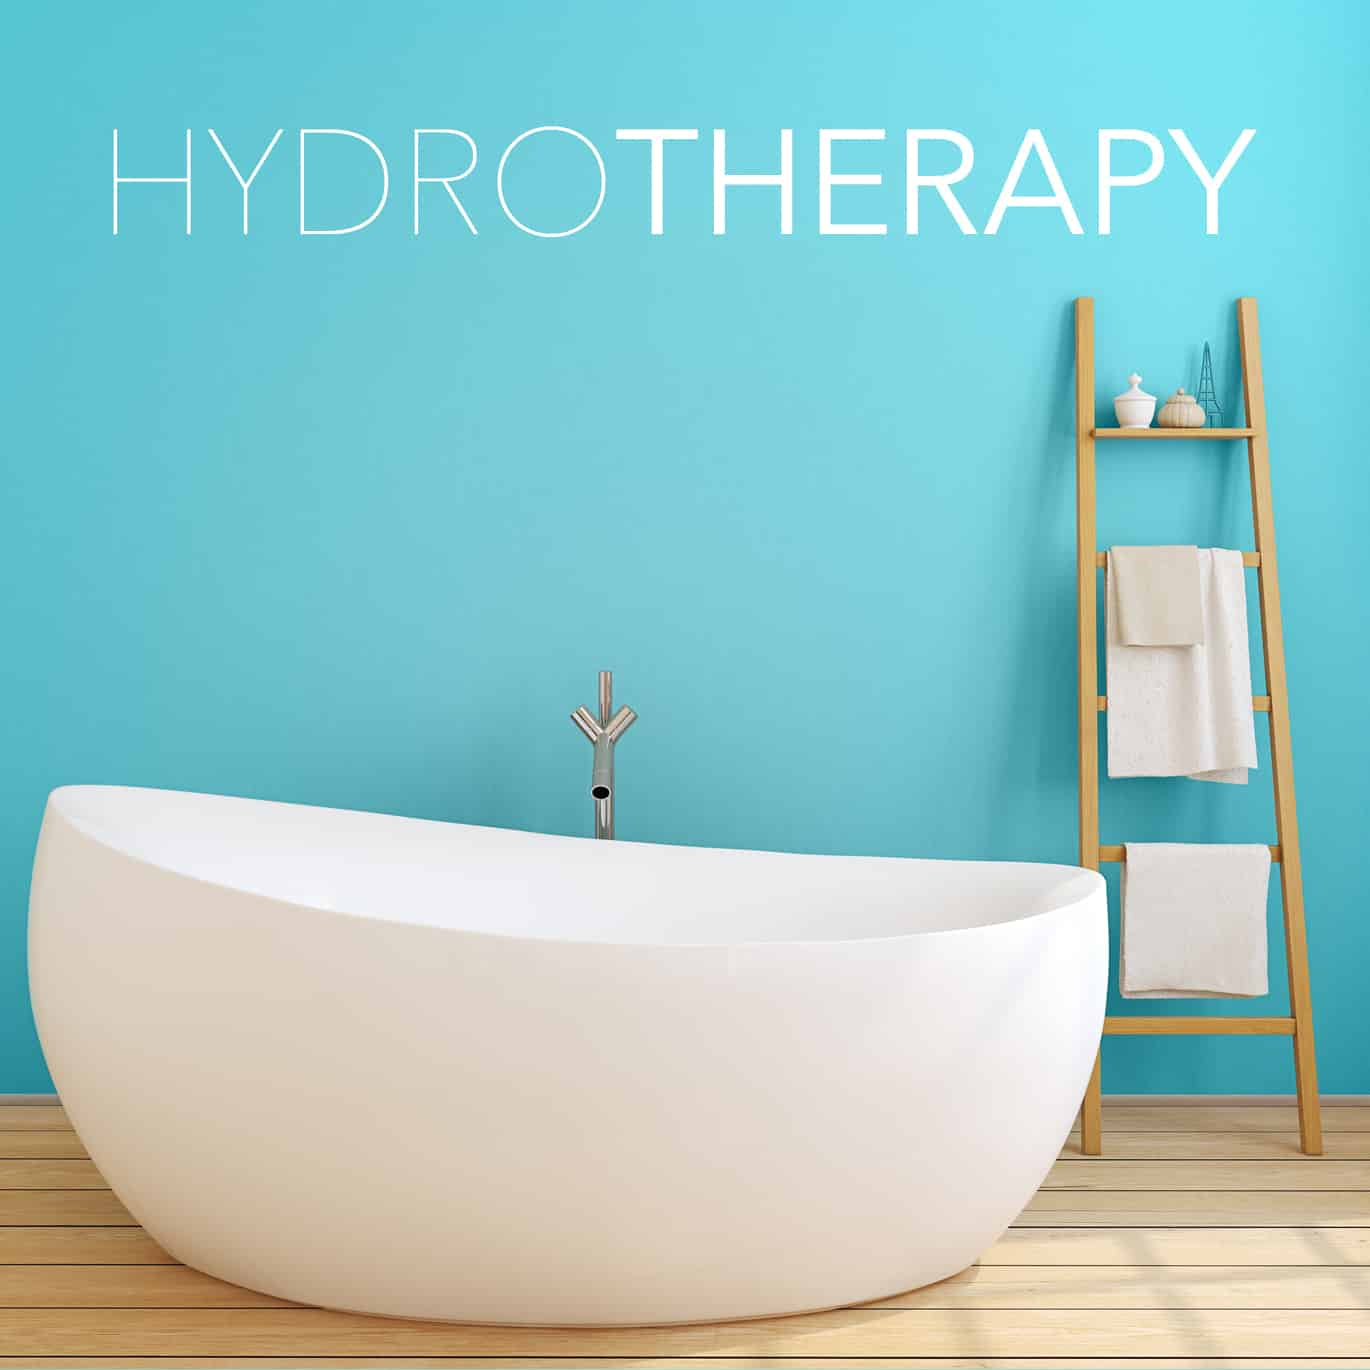 Hydrotherapy | Life & Health Network